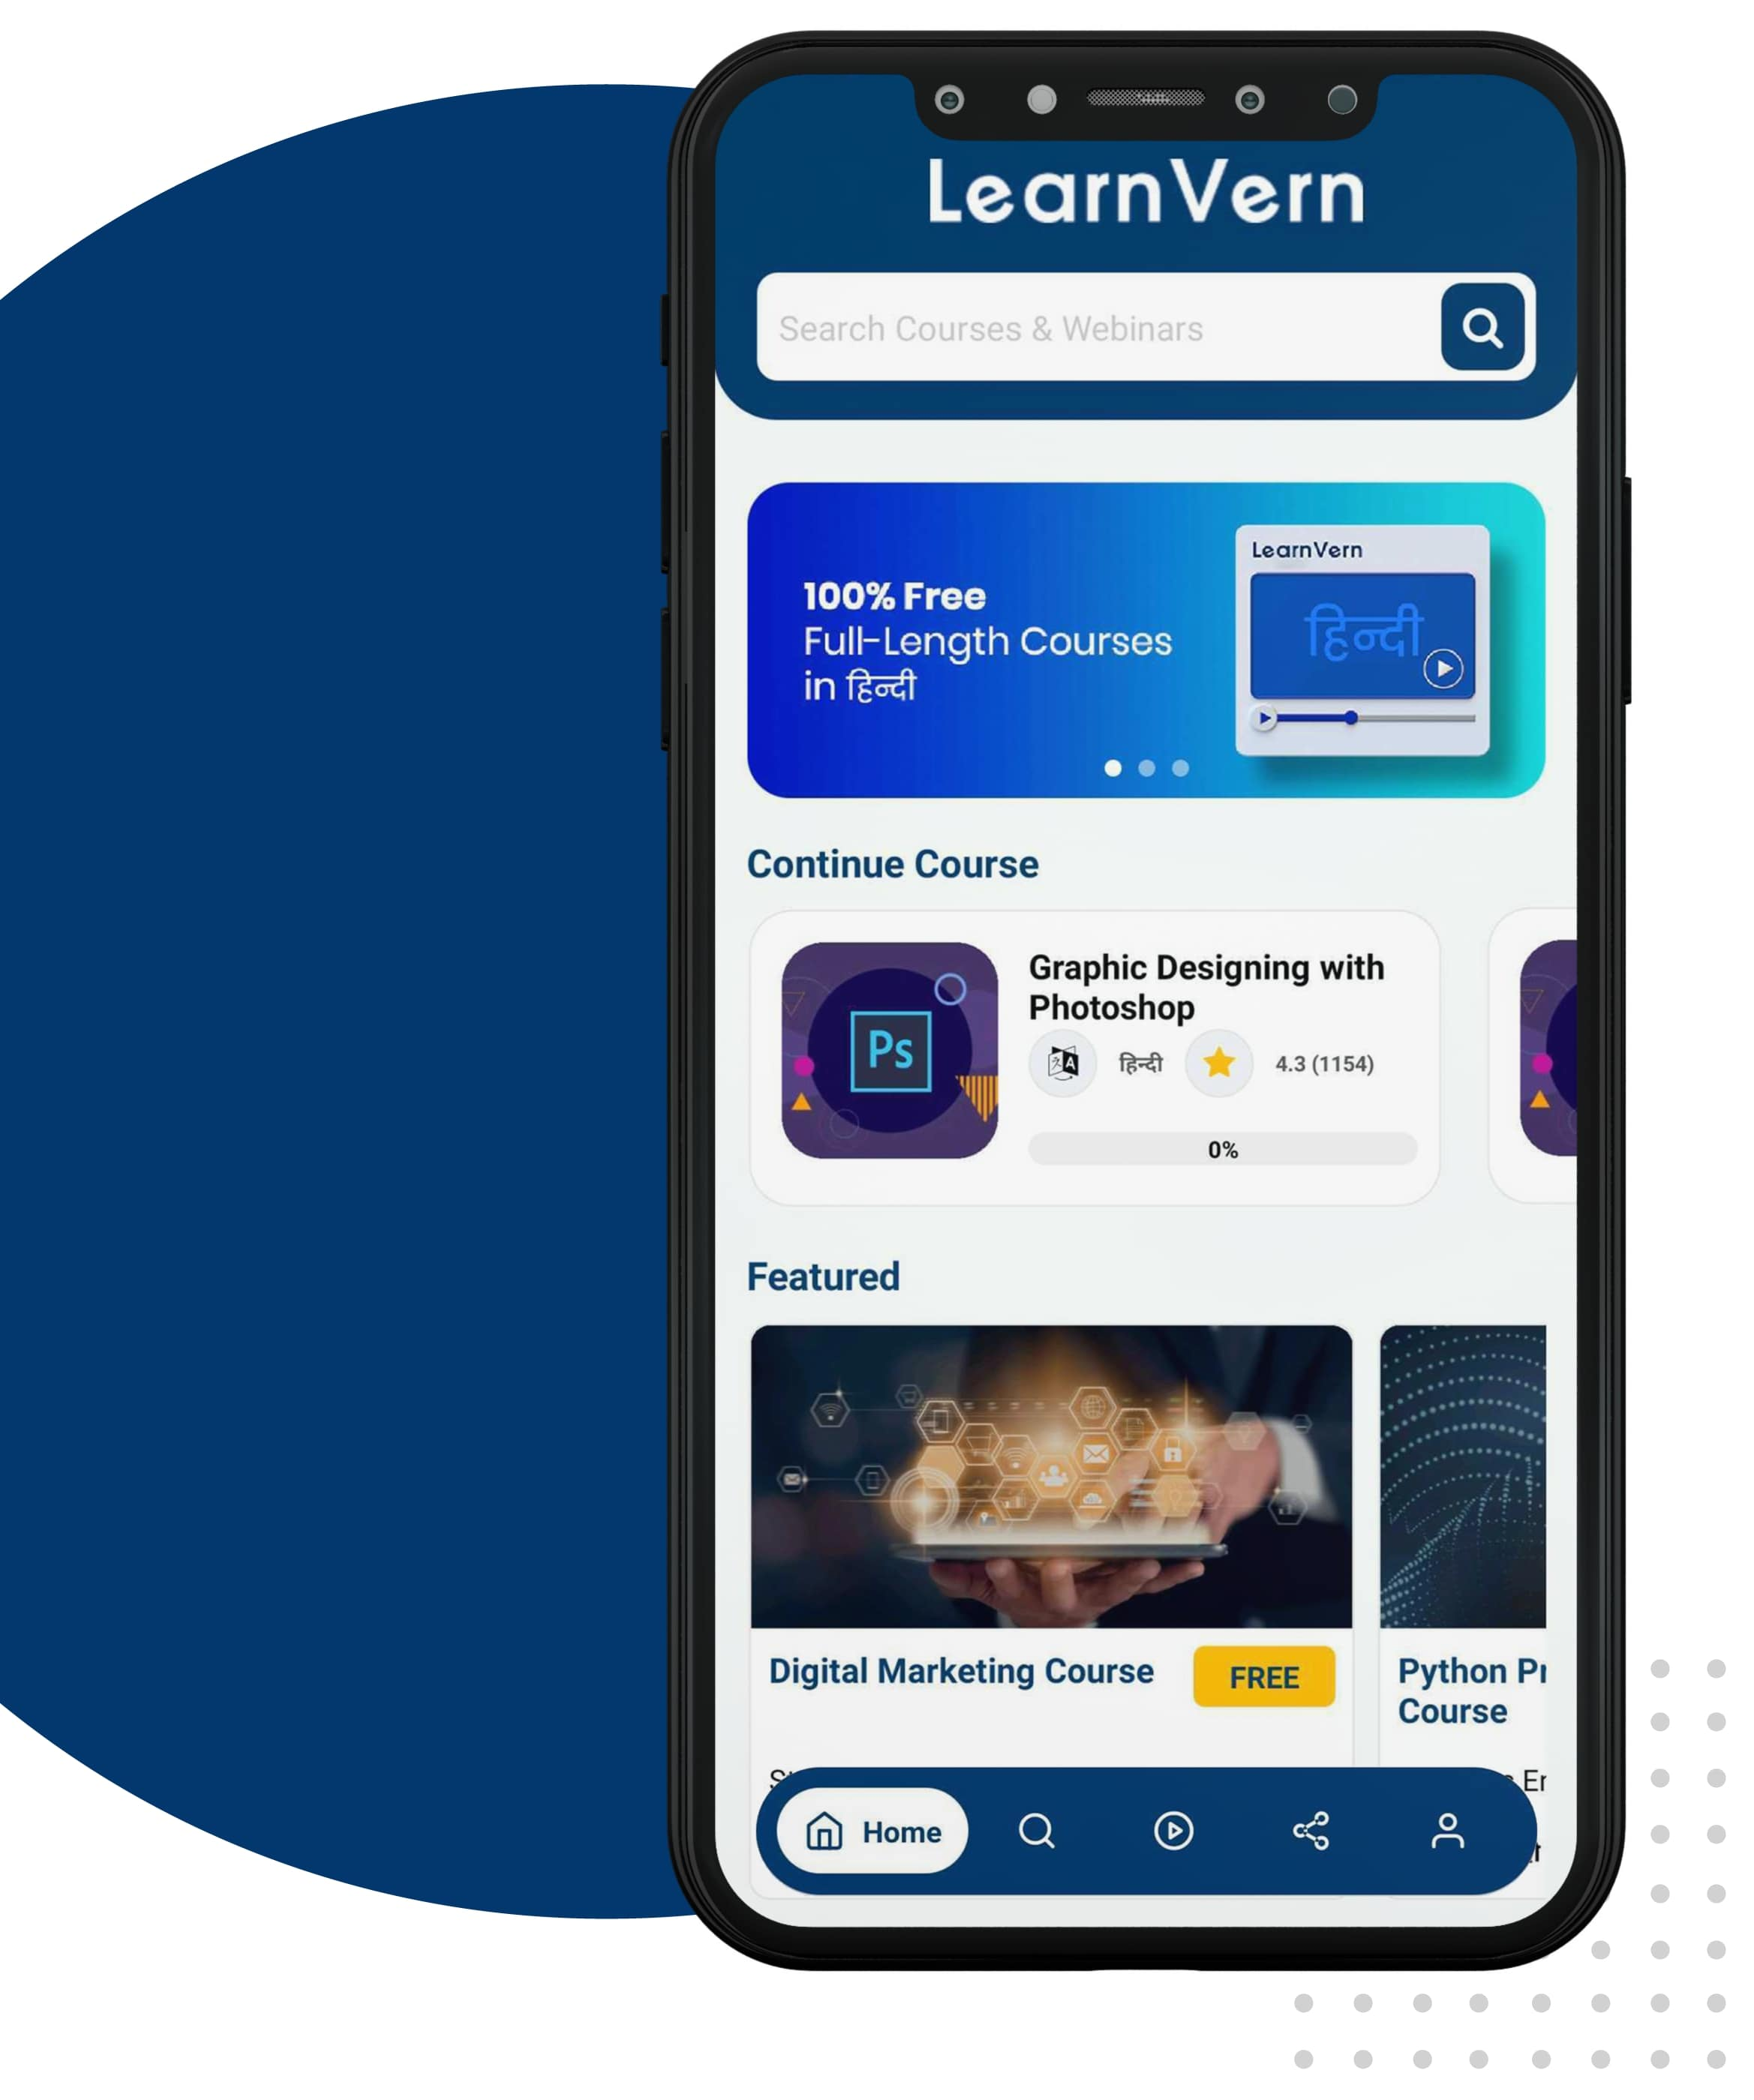 App Preview Image